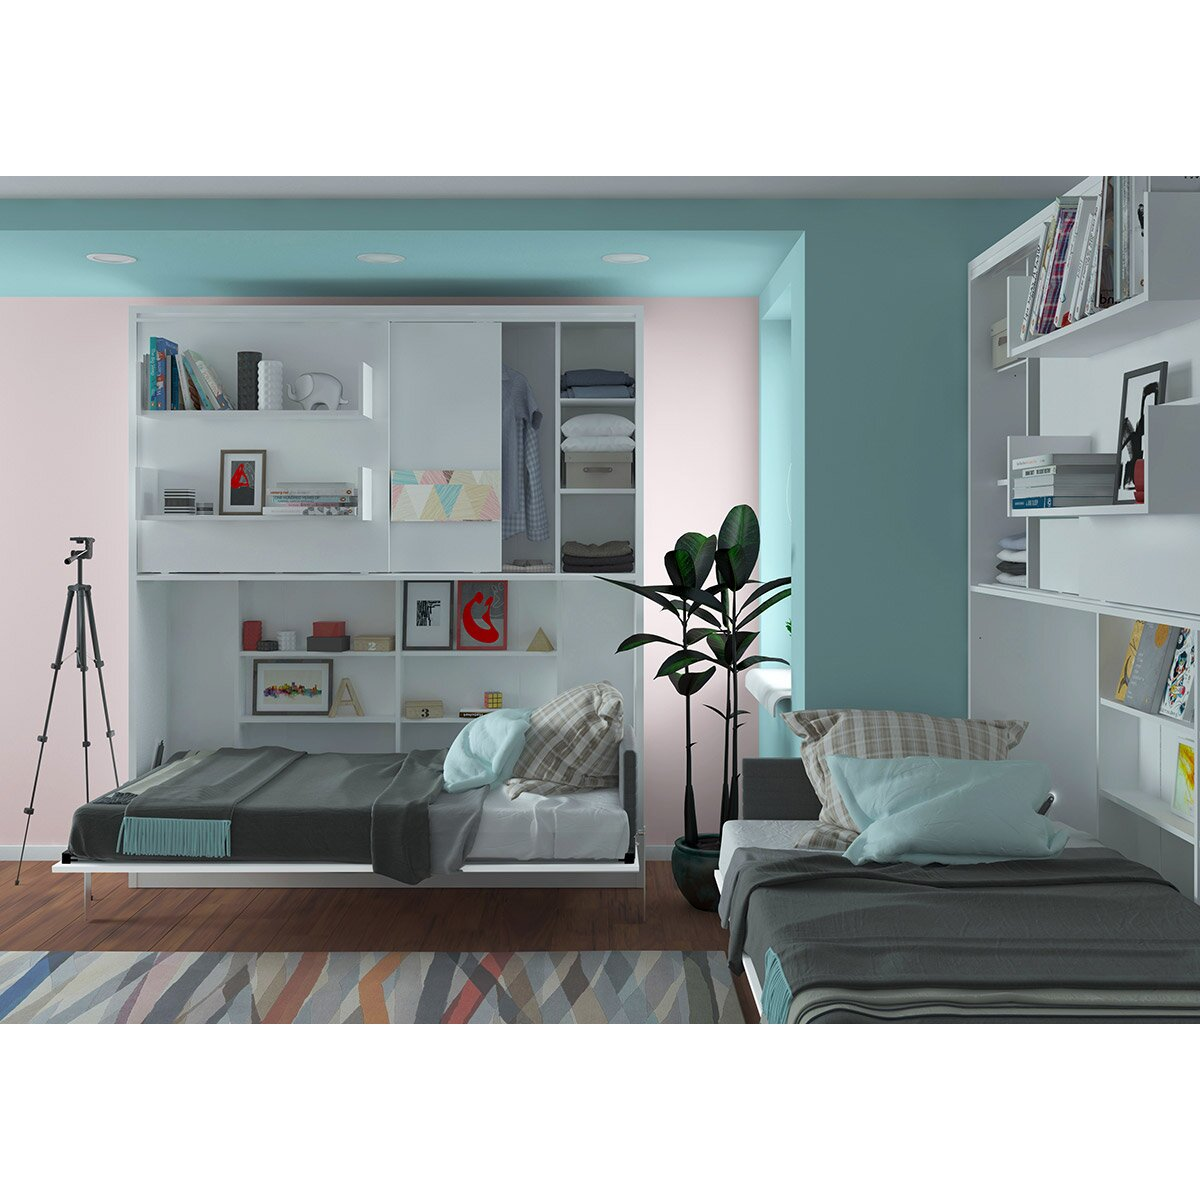 Multimo parete letto wall twin murphy bed wayfair for Parete letto